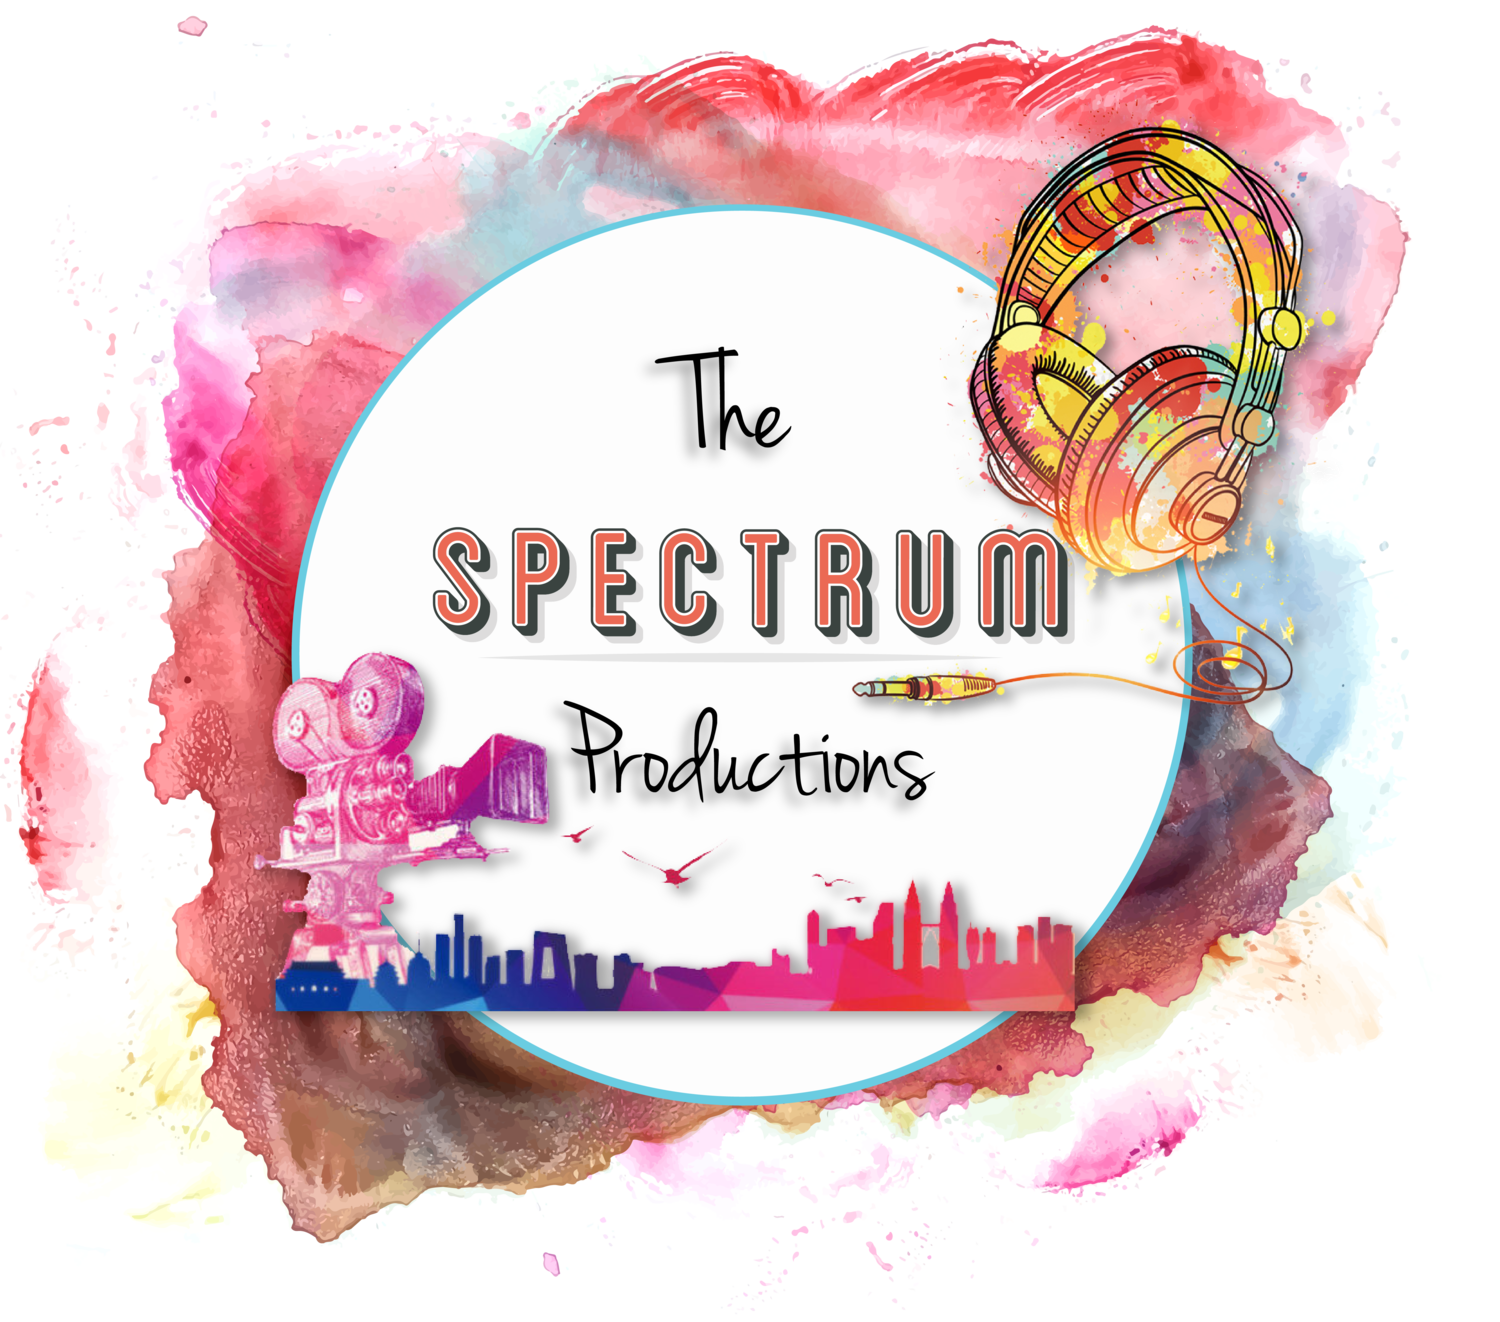 The Spectrum Productions